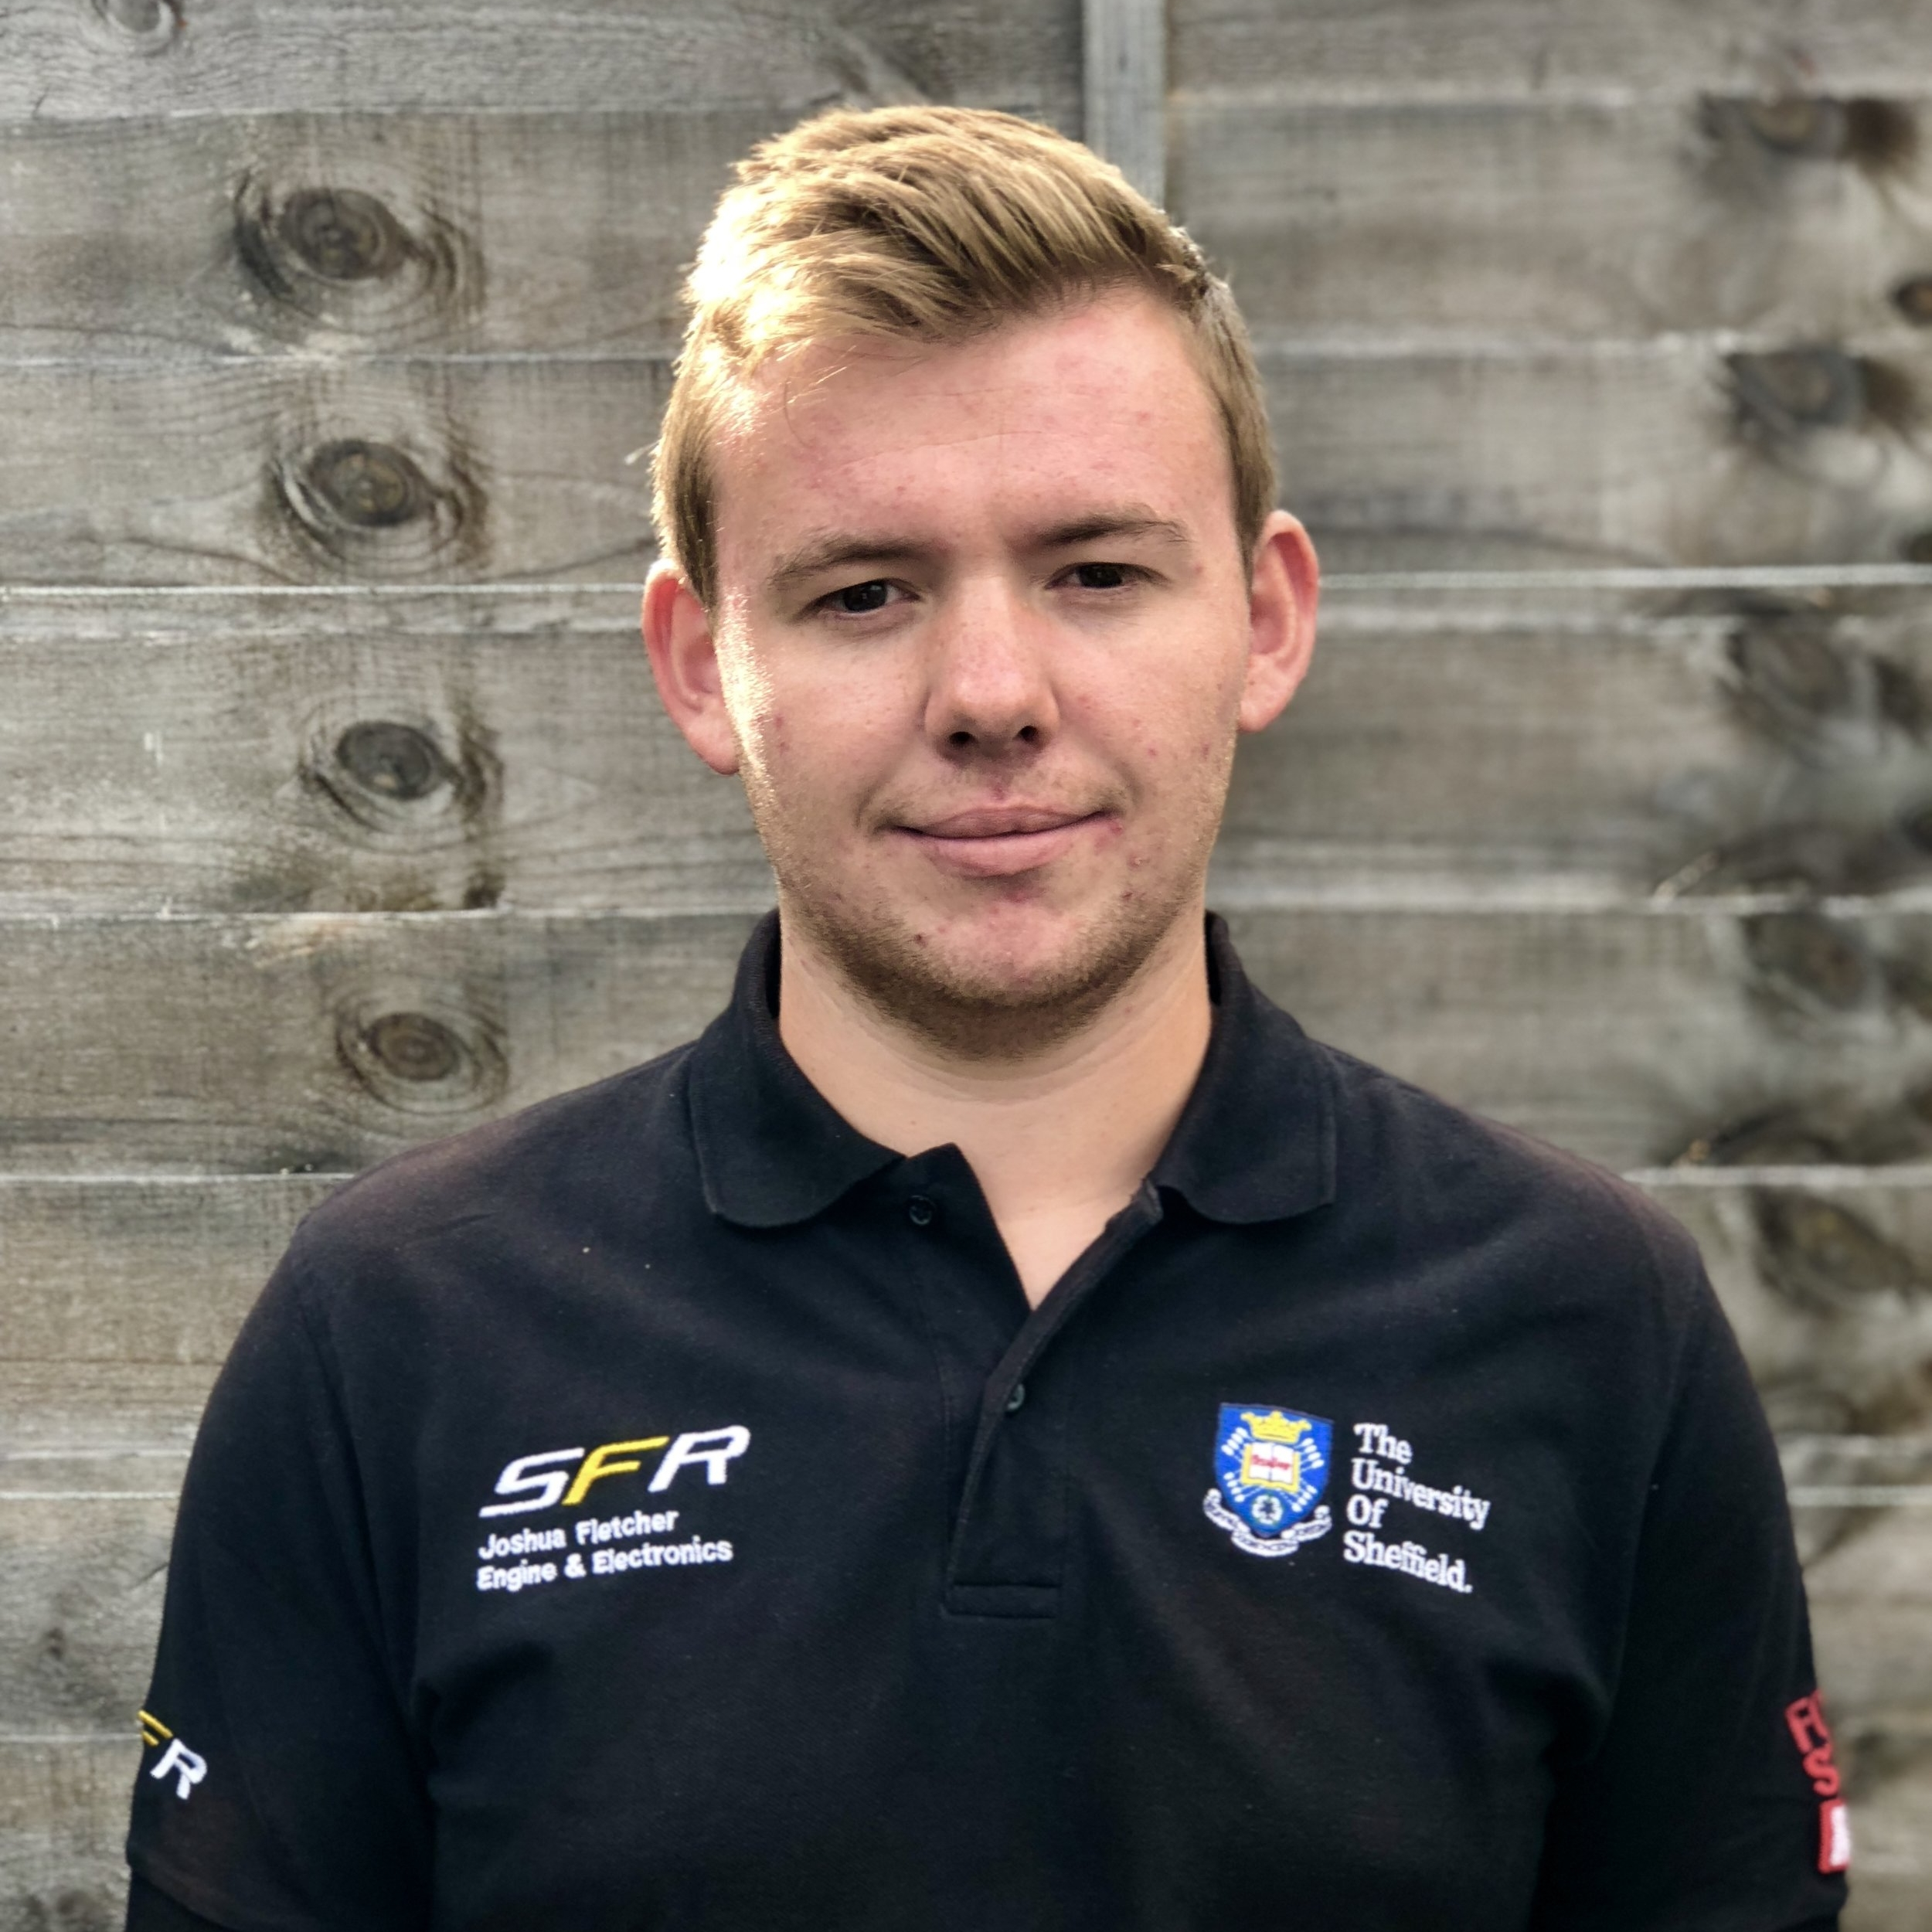 "josh fletcher  year: 3  course: aerospace engineering  "" In my first year I was a member of Chassis & Vehicle Dynamics where I gained a good understanding in the design and operation of Formula Student style cars. In second year I moved to the Engine & Electronics team. As part of this team I was responsible for the design and manufacture of SFR9's exhaust. In this year I also co-managed first year integration where I was responsible for designing and running the application process for prospective new team members. Going into third year I am going to be designing the cooling system for SFR10 as part of the Powertrain team."""